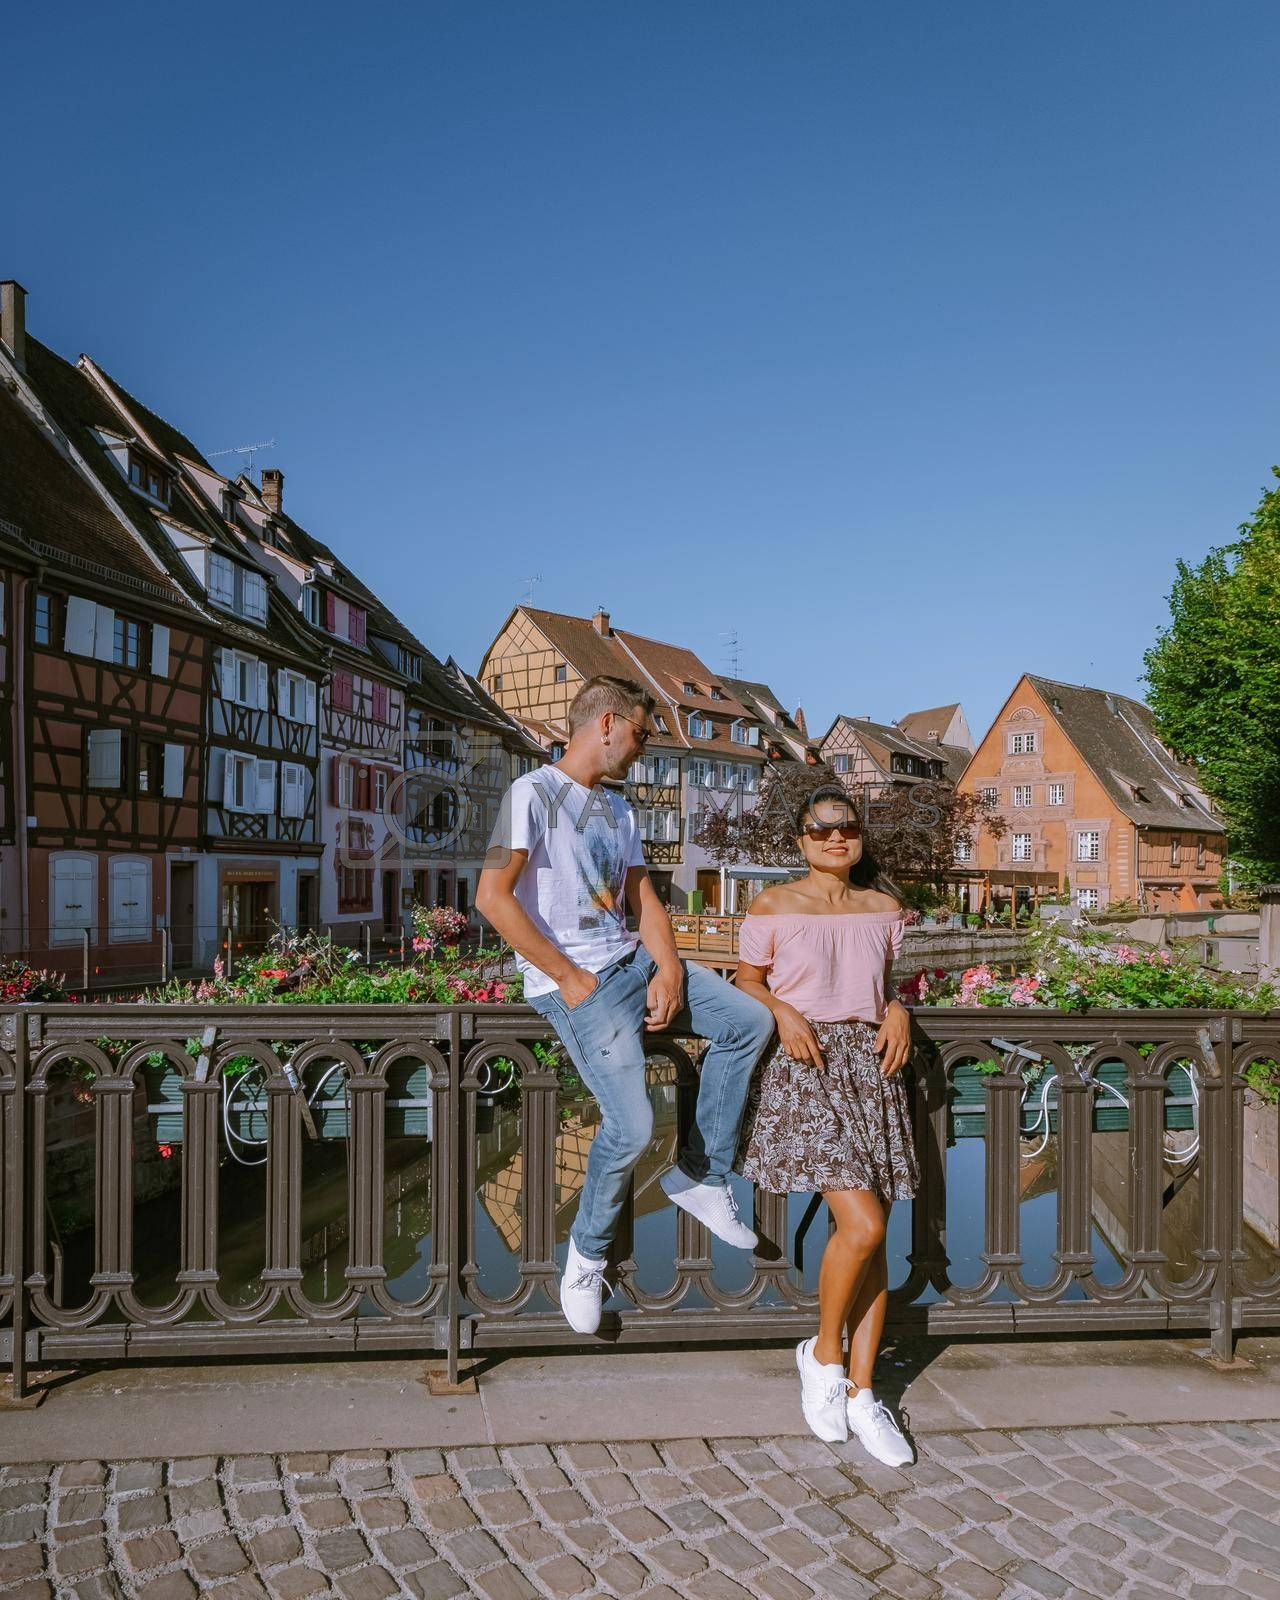 couple on city trip Colmar, Alsace, France. Petite Venice, water canal and traditional half timbered houses. Colmar is a charming town in Alsace, France. Beautiful view of colorful romantic city Colmar